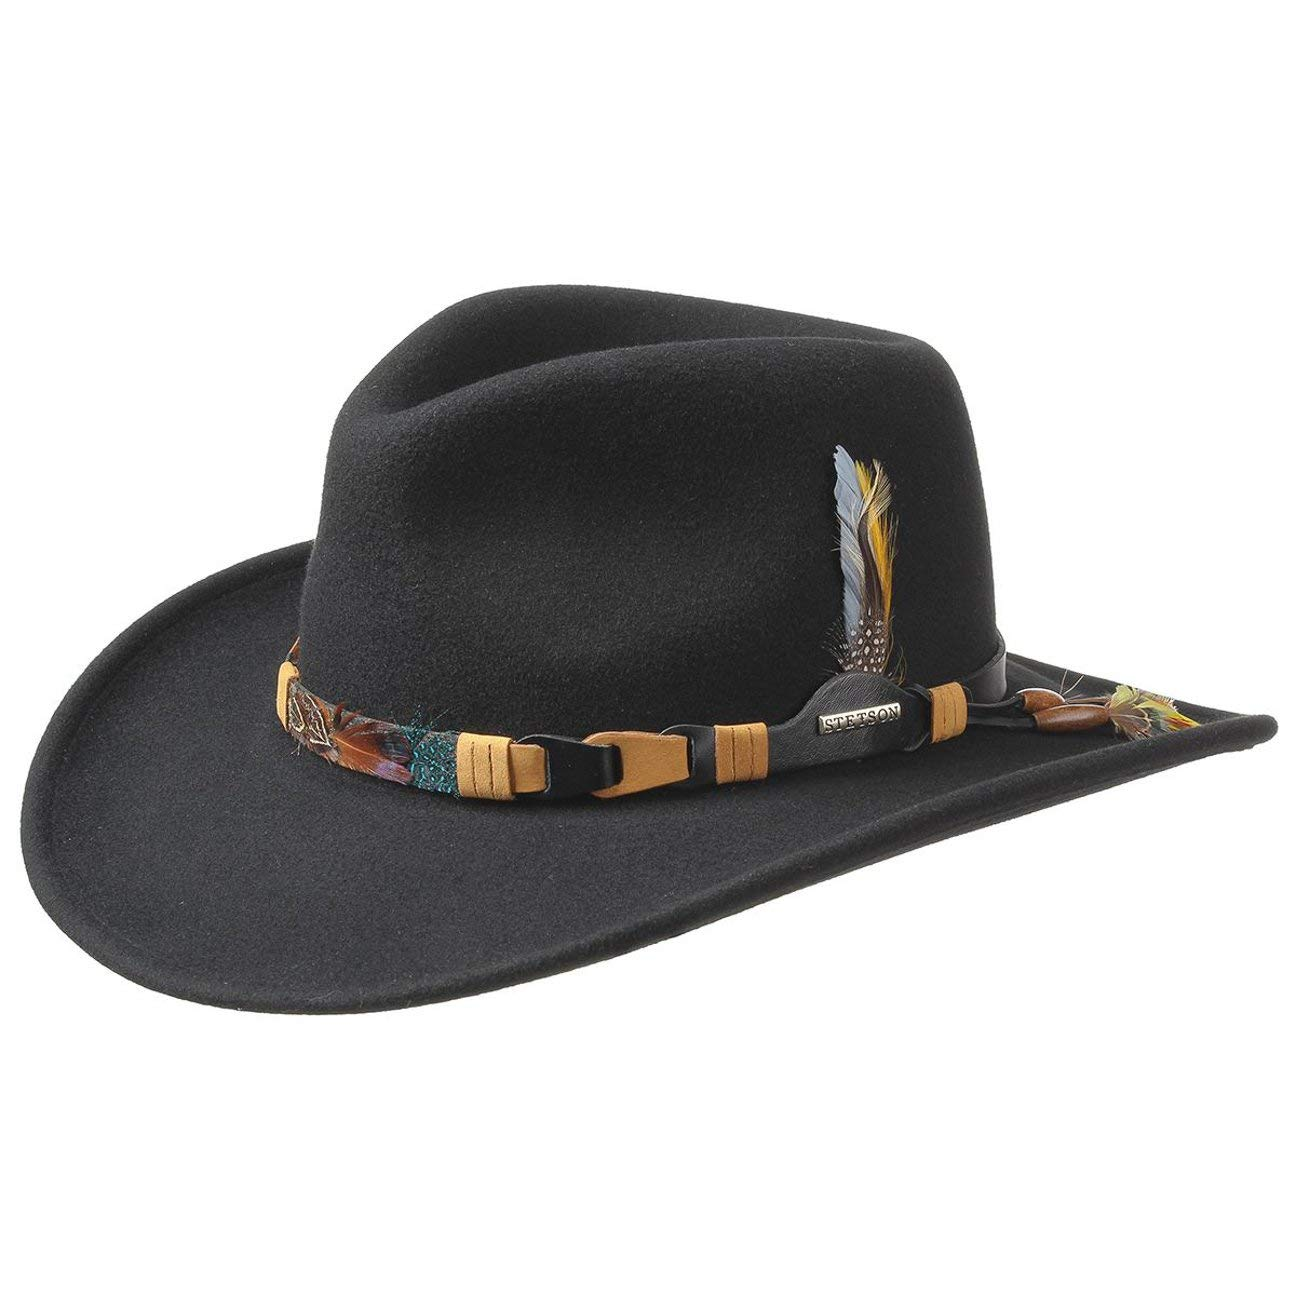 Kingsley Western Hat Stetson Indian feathers feather band